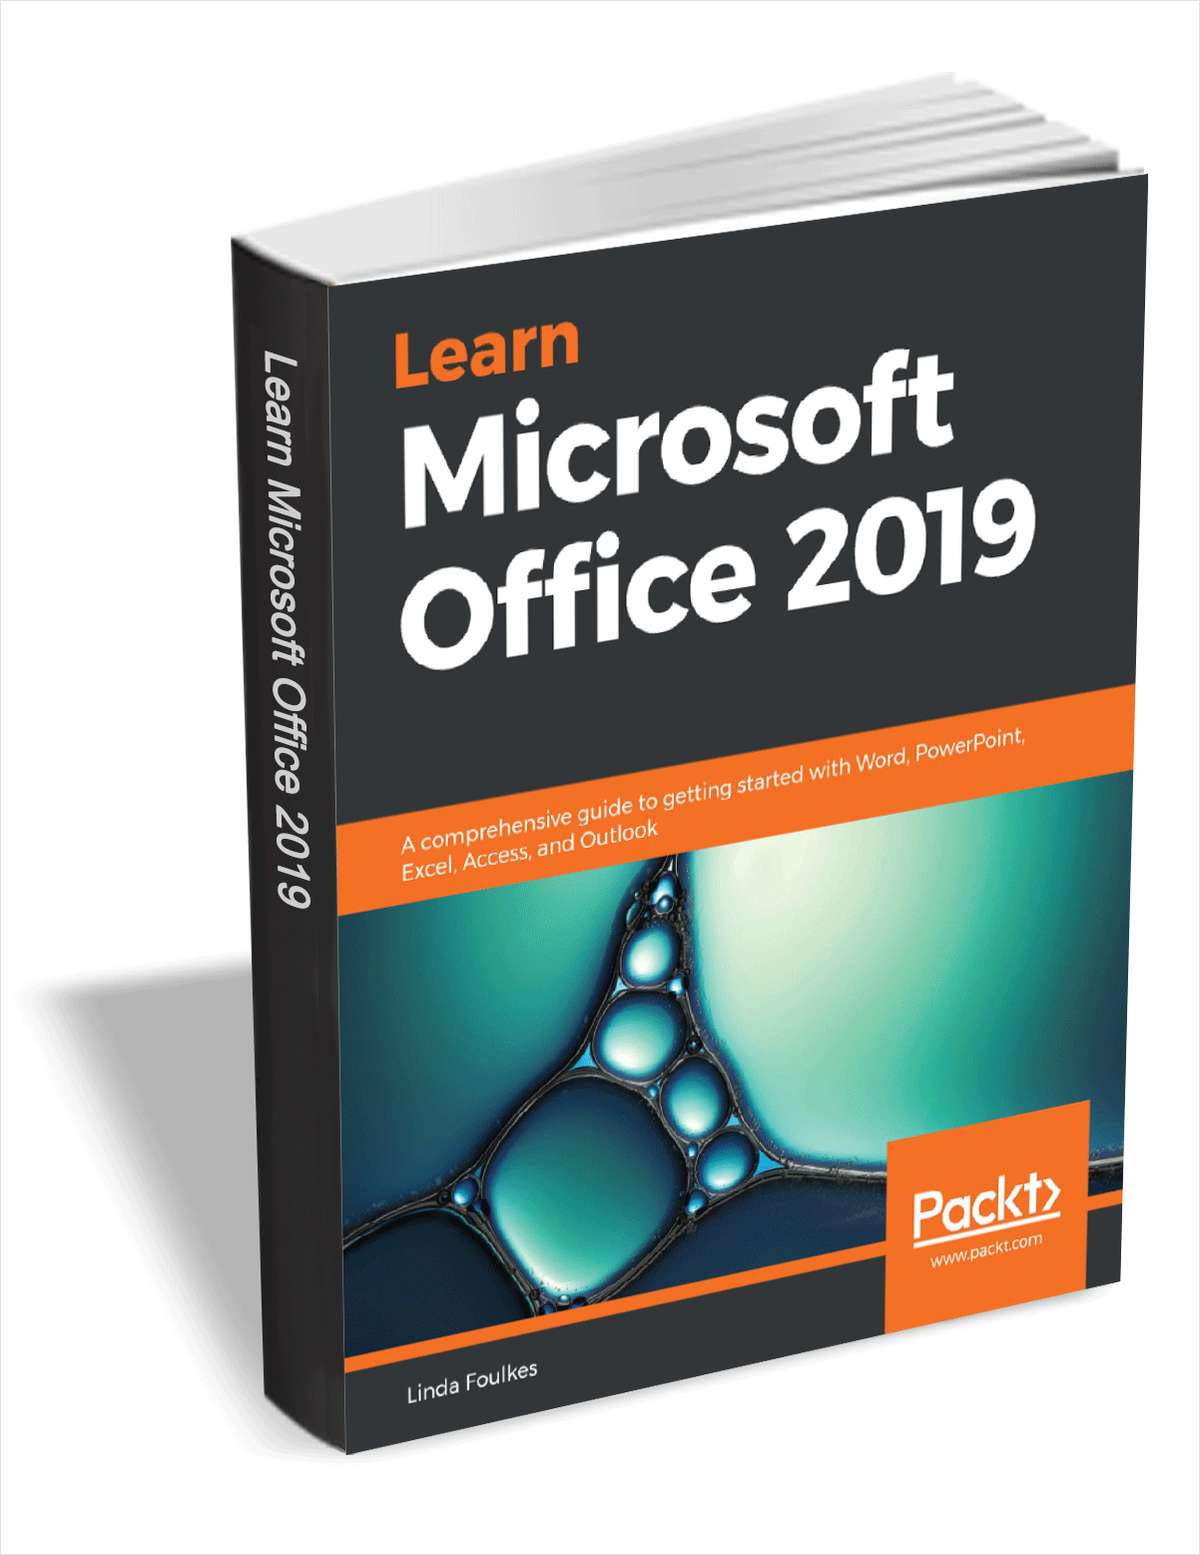 Learn Microsoft Office 2019 ($17.99 Value) FREE for a Limited Time Screenshot